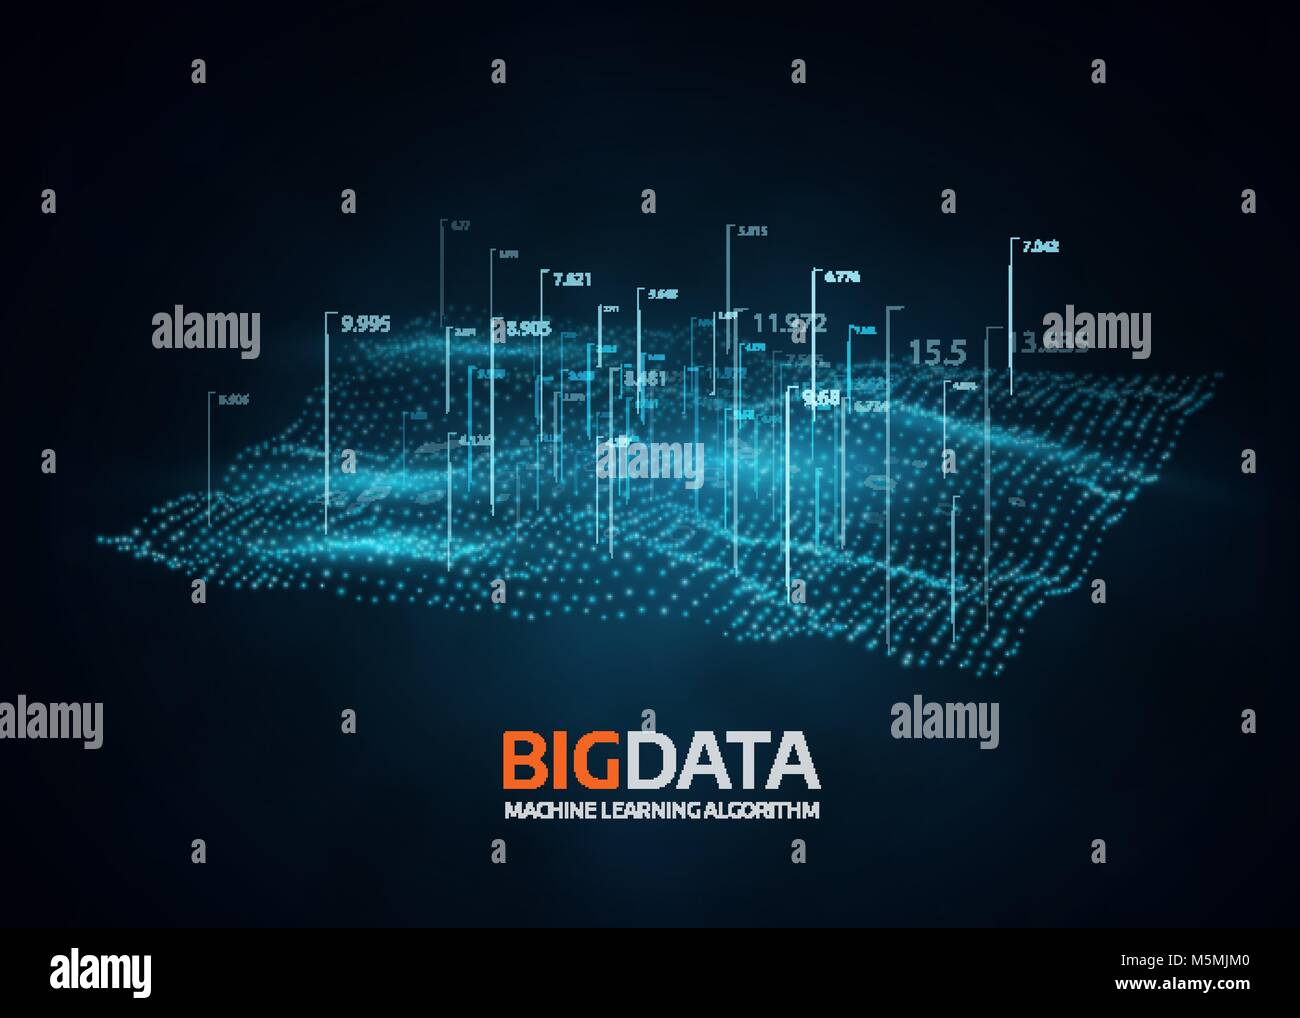 Big data visualization. Futuristic vector background. - Stock Image